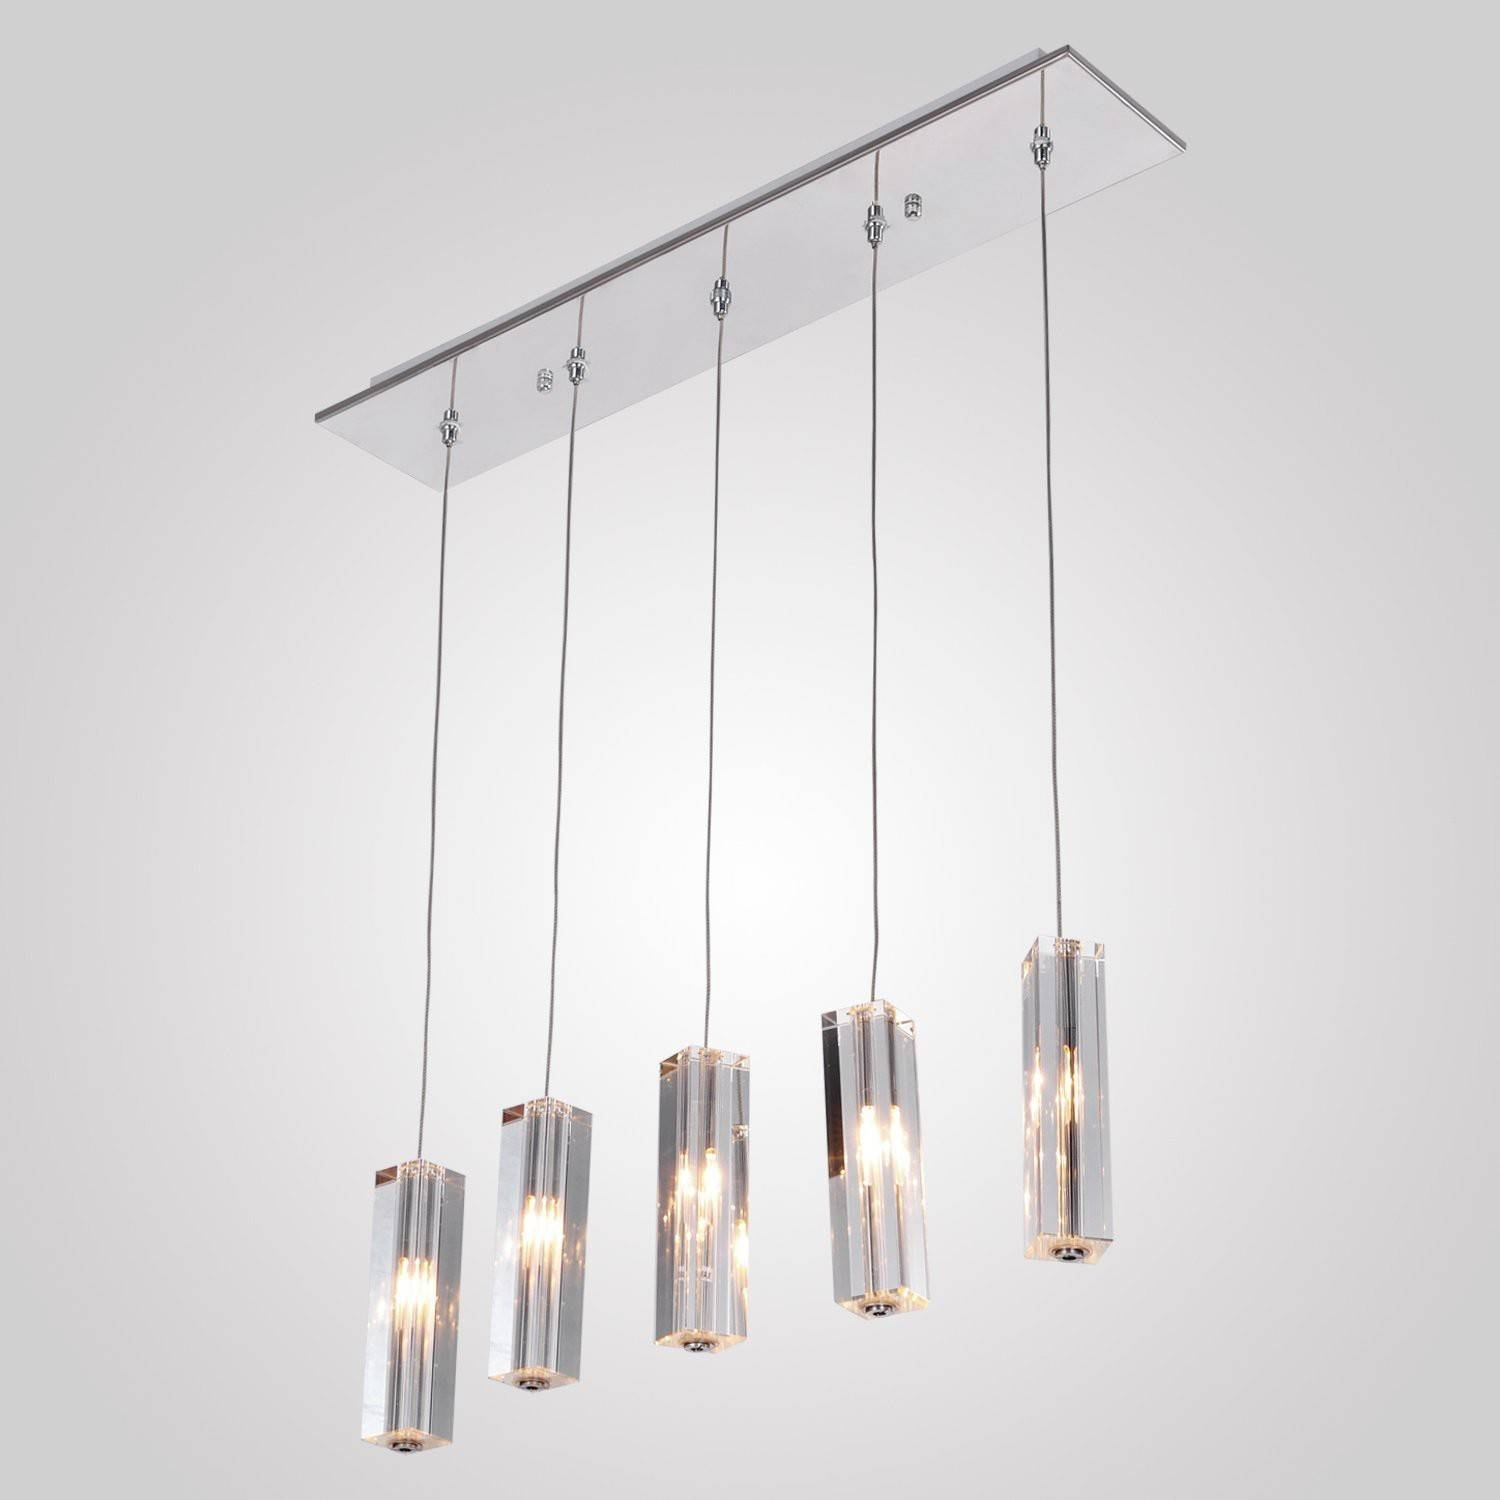 5 Cuboid Square Clear Crystal Pendant Light Intended For Square Pendant Light Fixtures (Gallery 9 of 15)